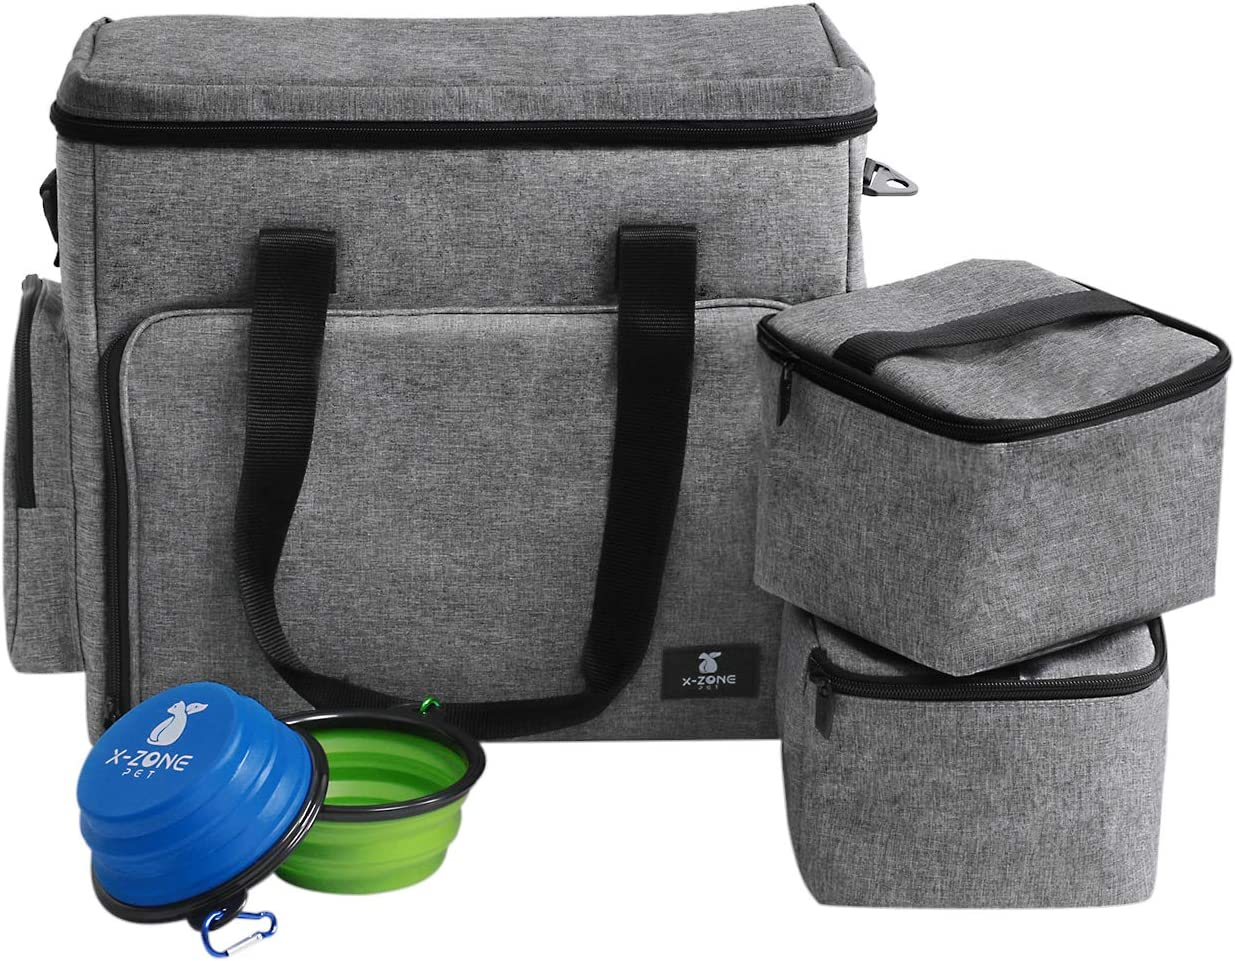 X-ZONE PET Dog Travel Bag Airline Approved Luggage Bag with Multi-function Pockets Includes 1Pet Travel Bag 2Dog Food Carrier Bag 2Pet Silicone Collapsible Bowls Perfect Weekend Pet Travel Set for Pet